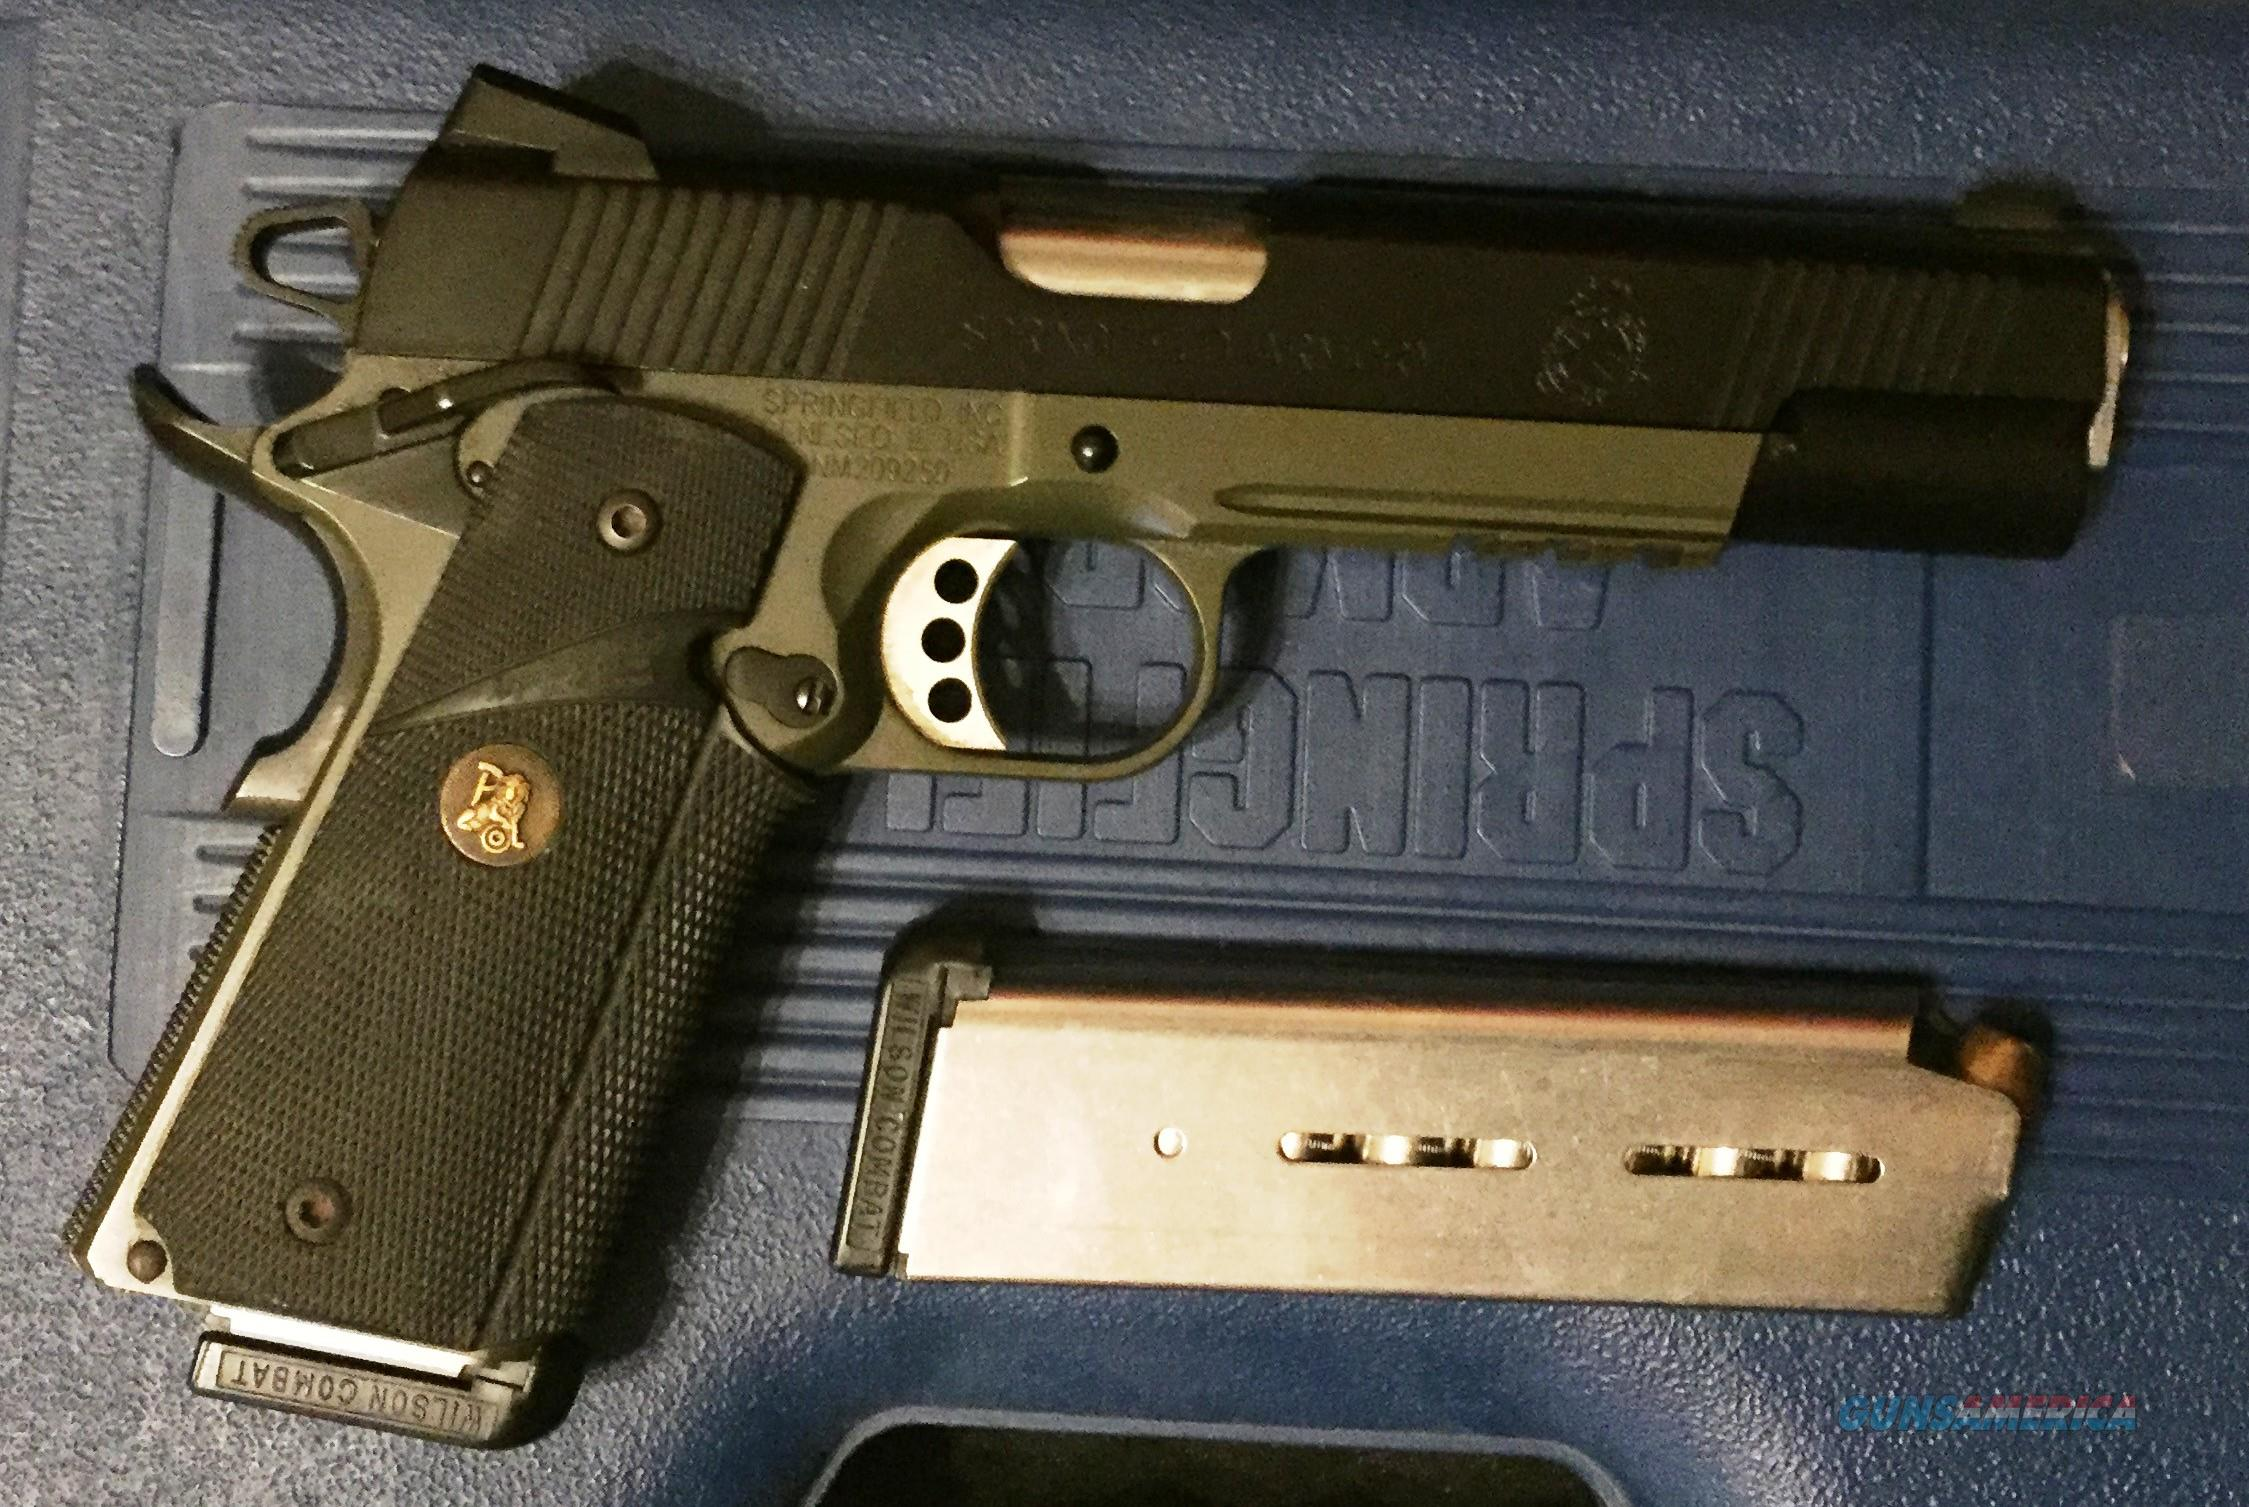 Springfield Armory 1911 Operator – 45 ACP / $800.00 - OBO *SOLD*  Guns > Pistols > Springfield Armory Pistols > 1911 Type